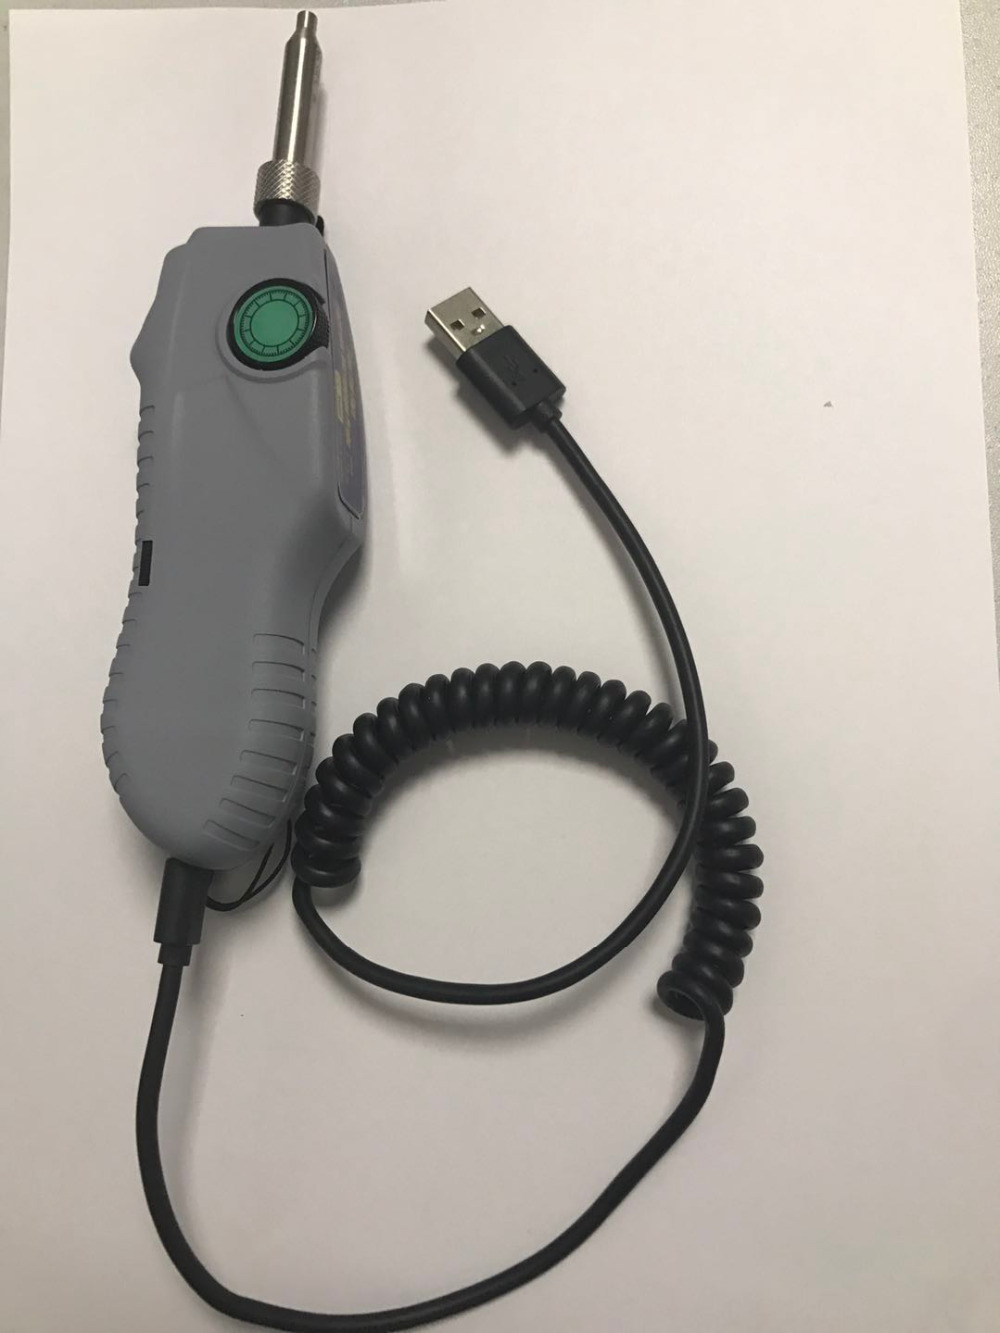 Fiber Optic Inspection Probe TIP-500P Digital sensor inside the probe to access the laptop or PC directlyFiber Optic Inspection Probe TIP-500P Digital sensor inside the probe to access the laptop or PC directly